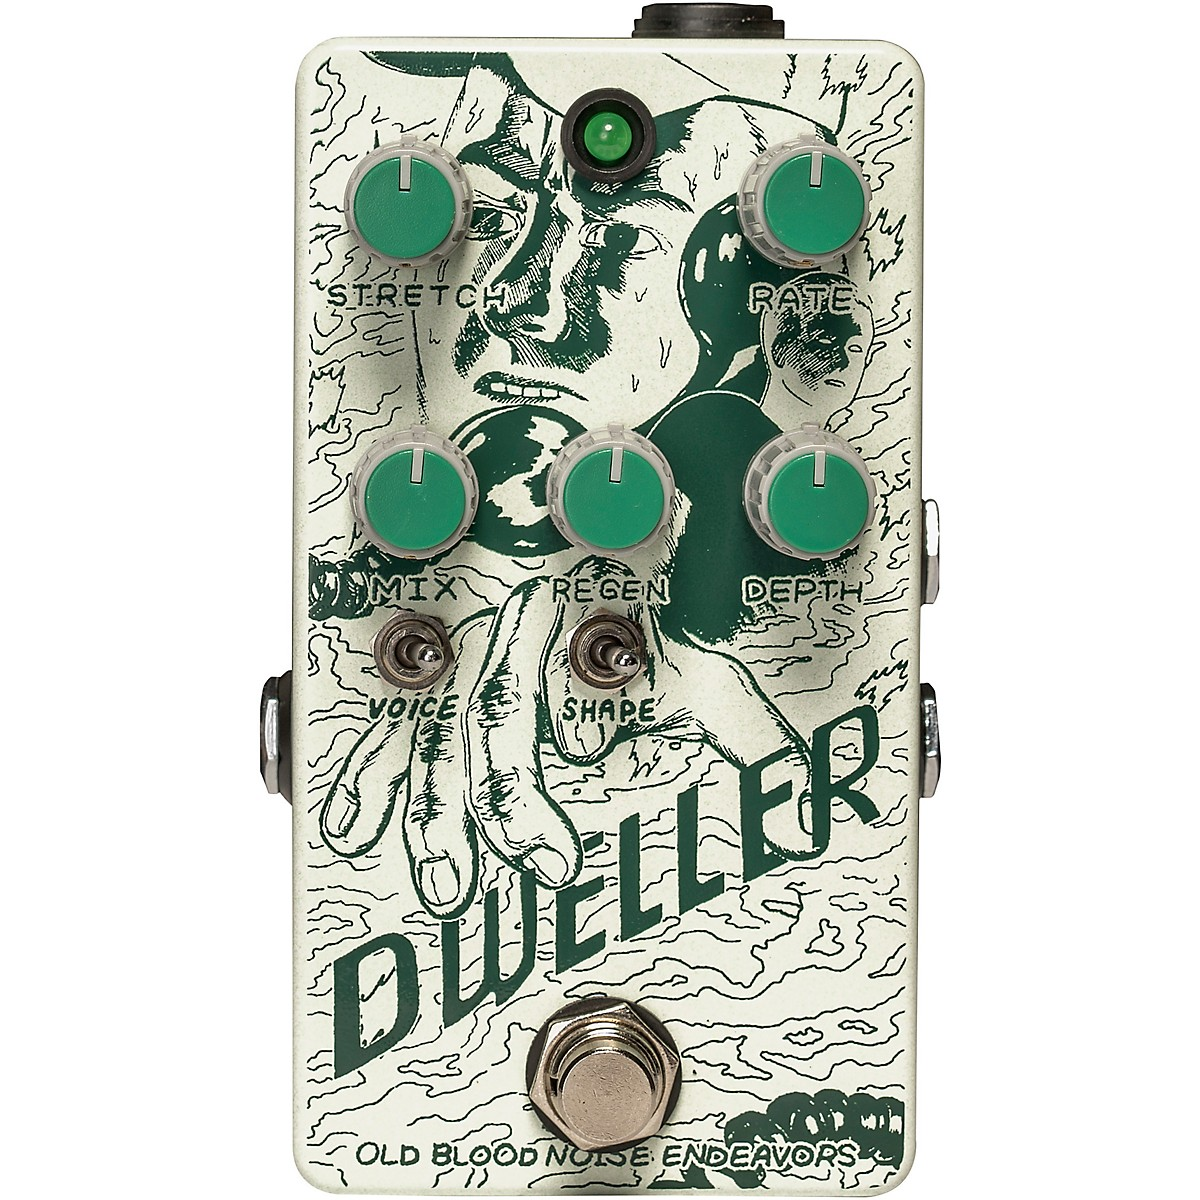 Old Blood Noise Endeavors Dweller Phase Repeater Effects Pedal